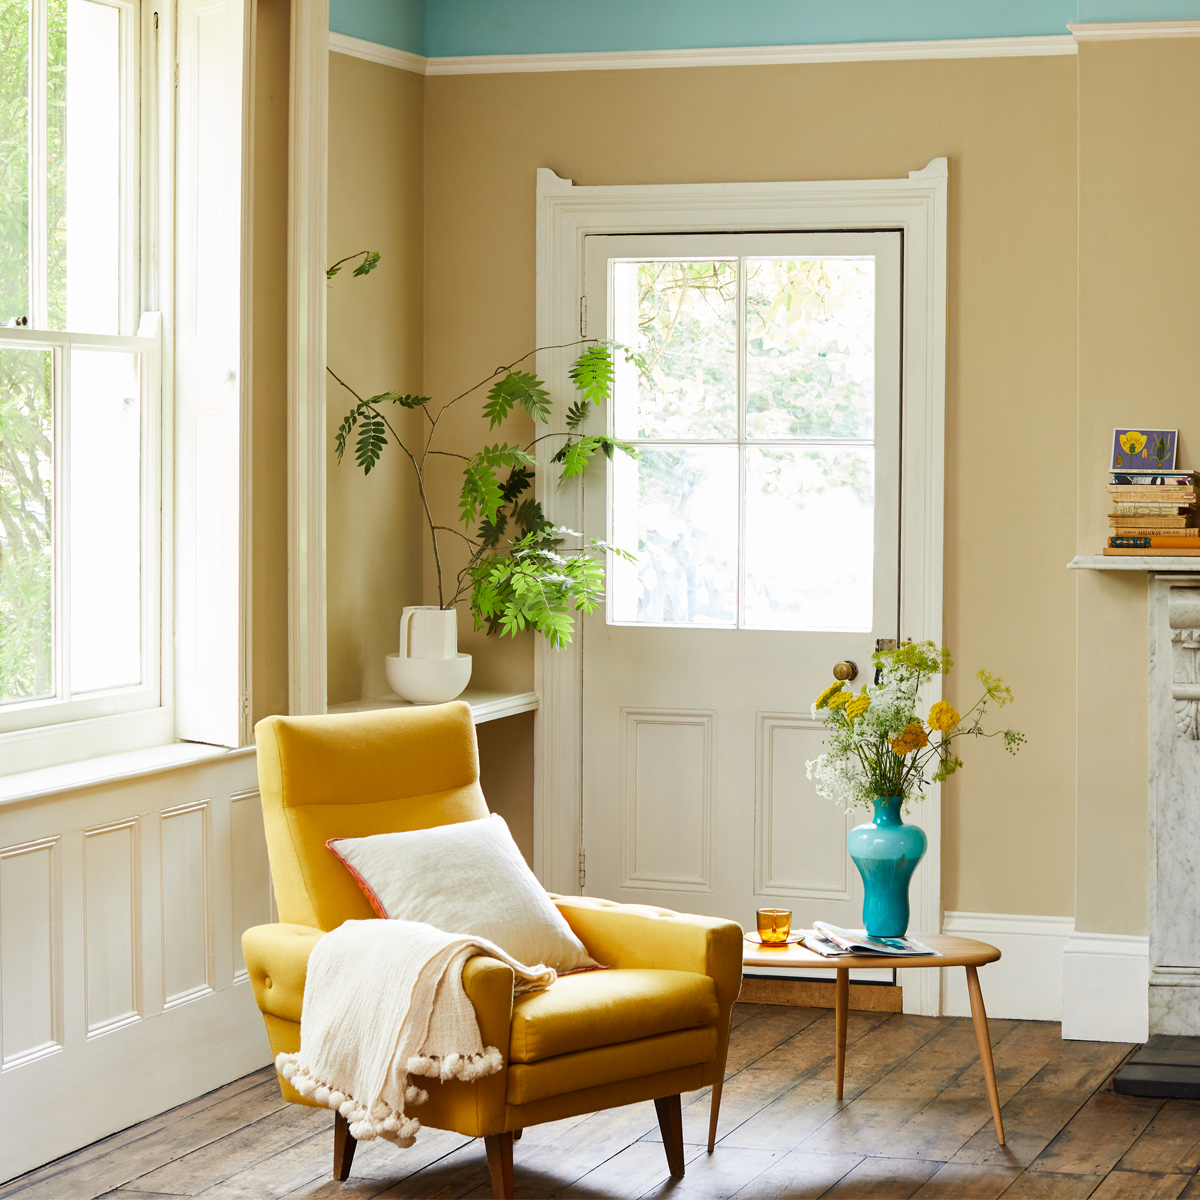 Paint colours Crocky Road and Milk Jug are a great combination in this characterful room